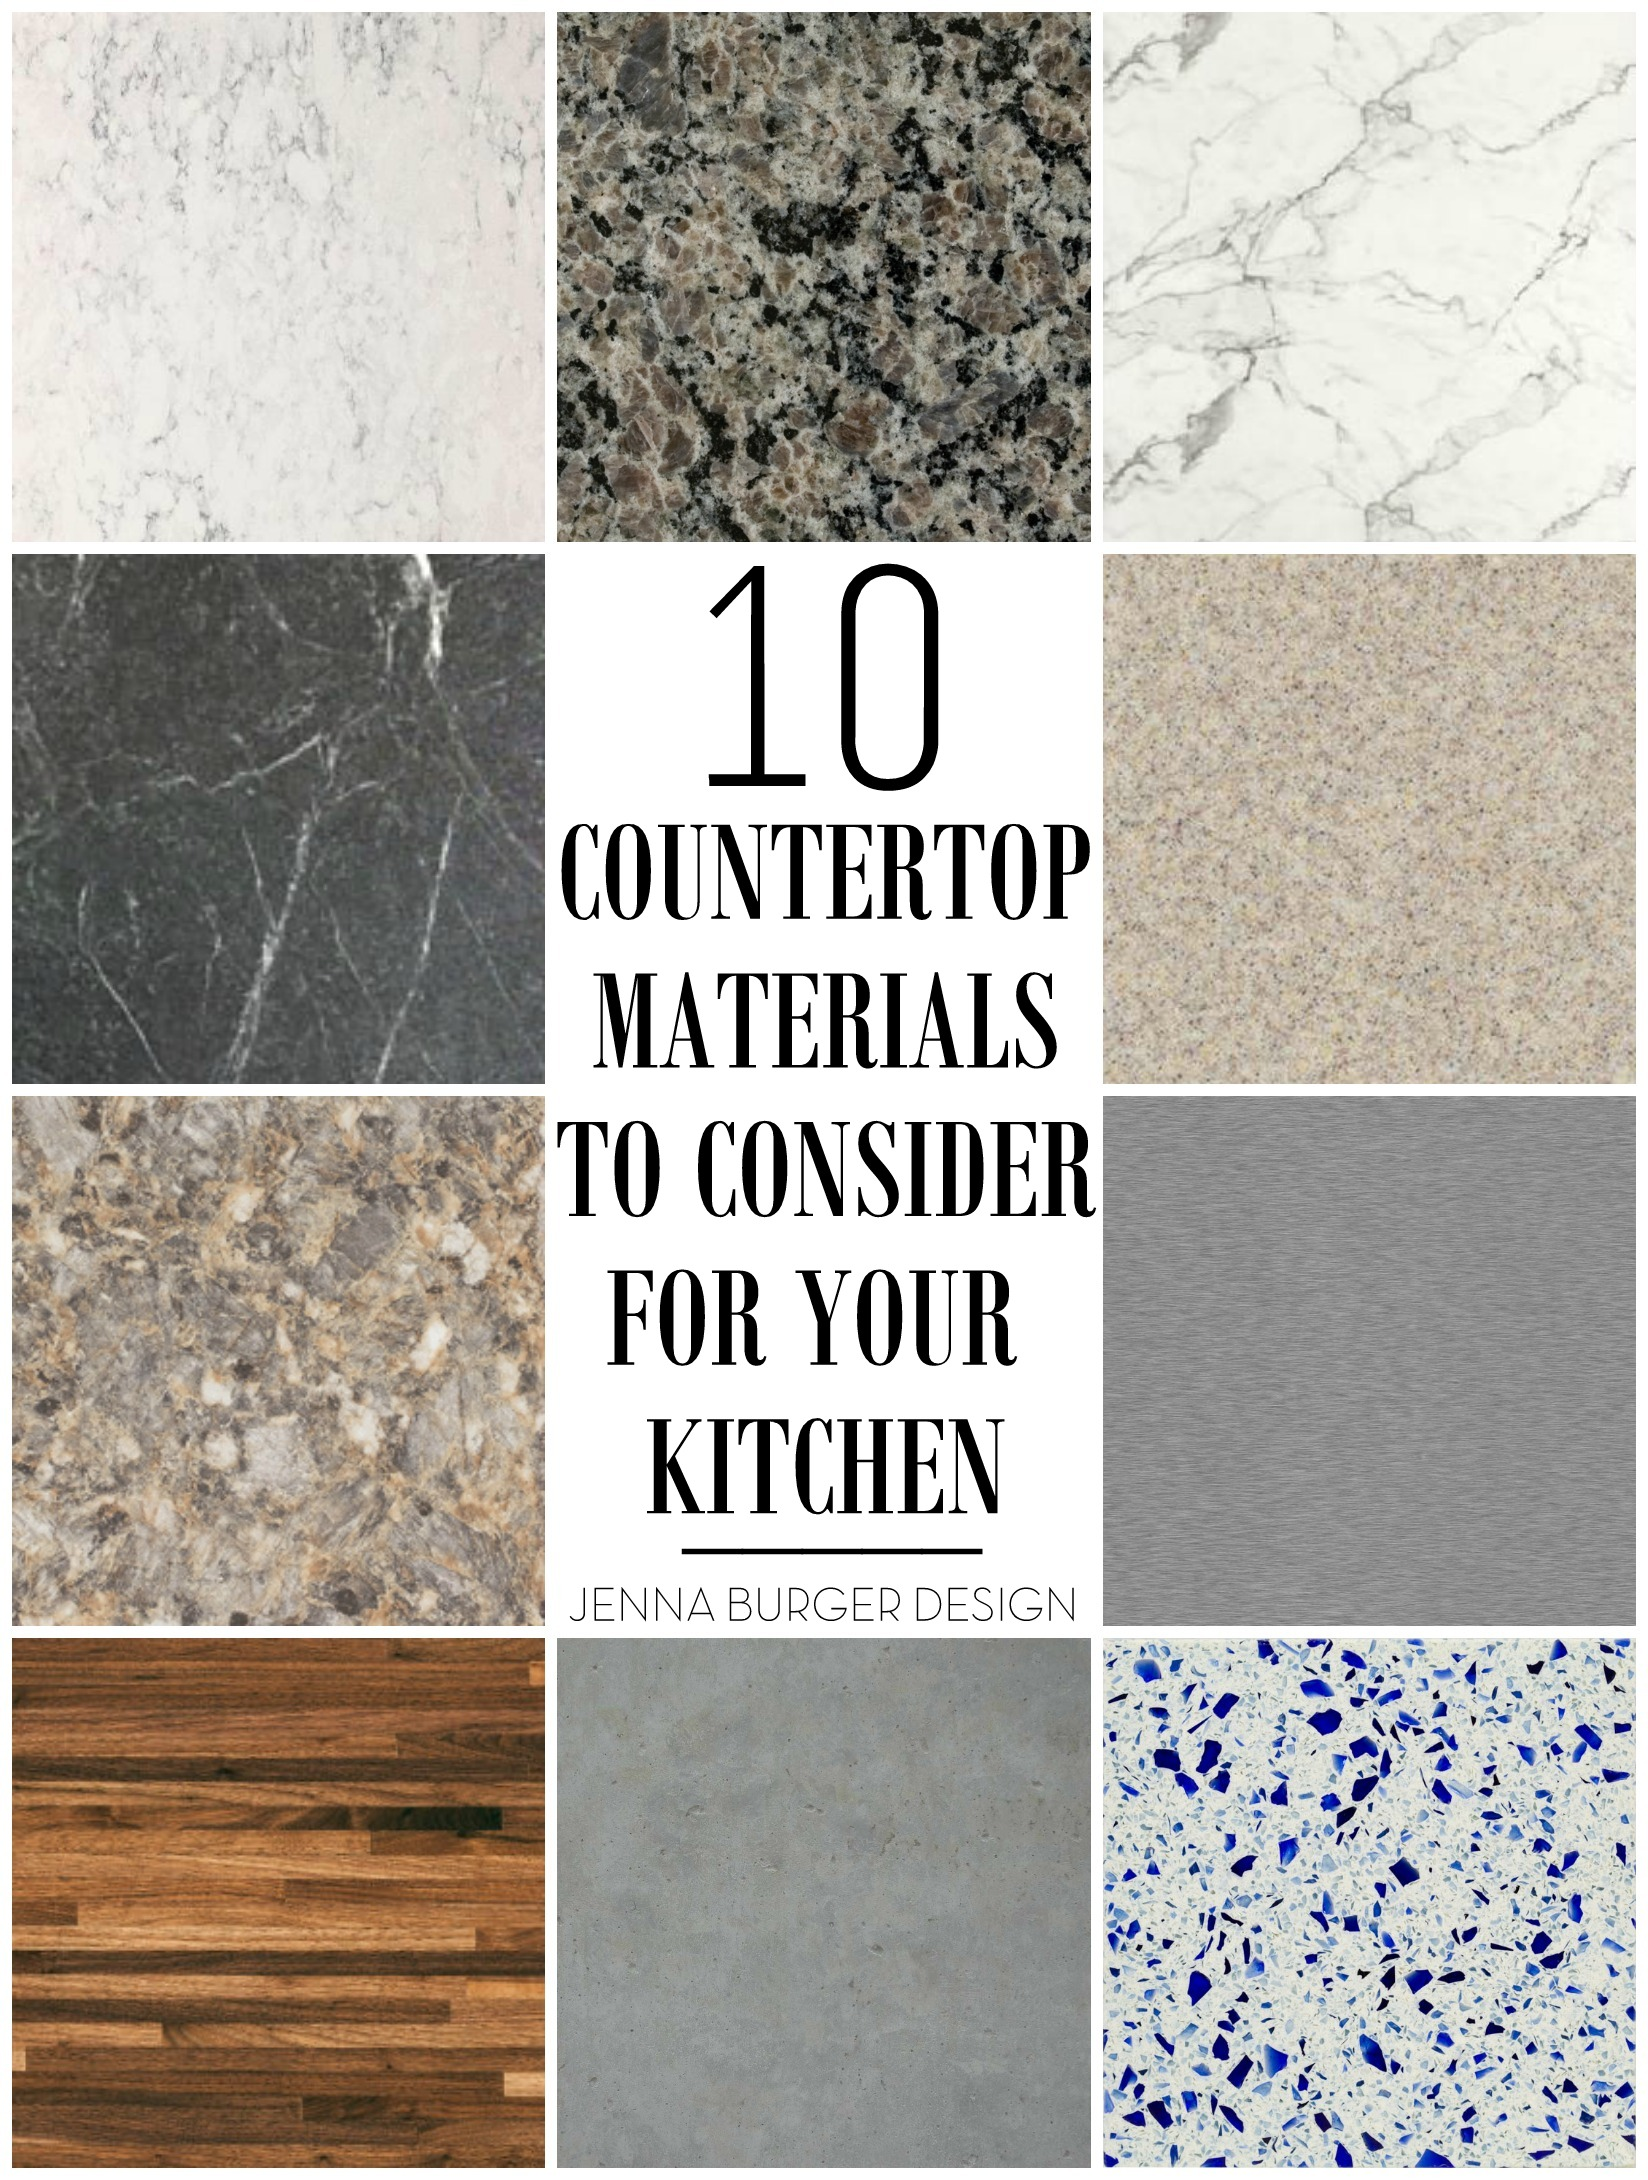 10 countertop materials to consider for the kitchen kitchen countertop material 10 Countertop Materials to Consider for your KITCHEN Round up of material choices at www